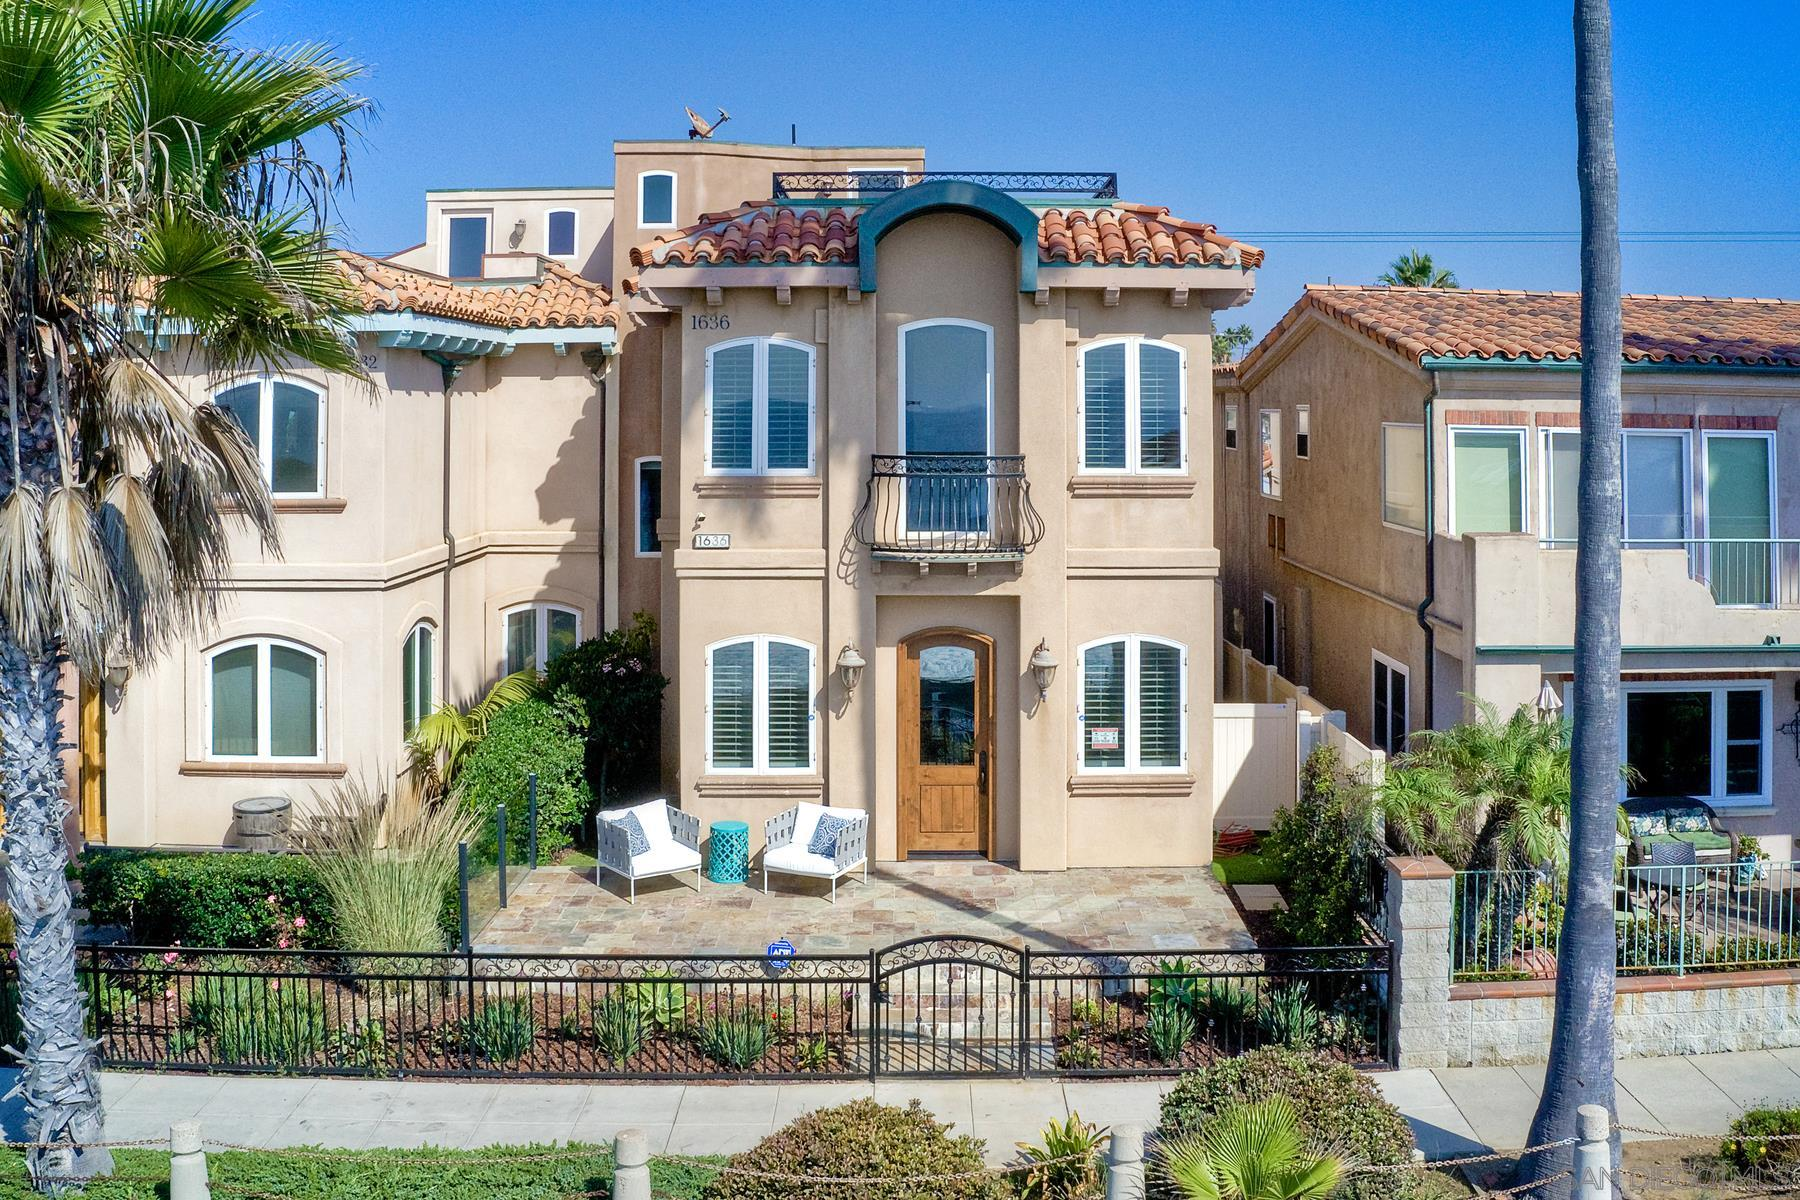 Photo of 1636 S Pacific, Oceanside, CA 92054